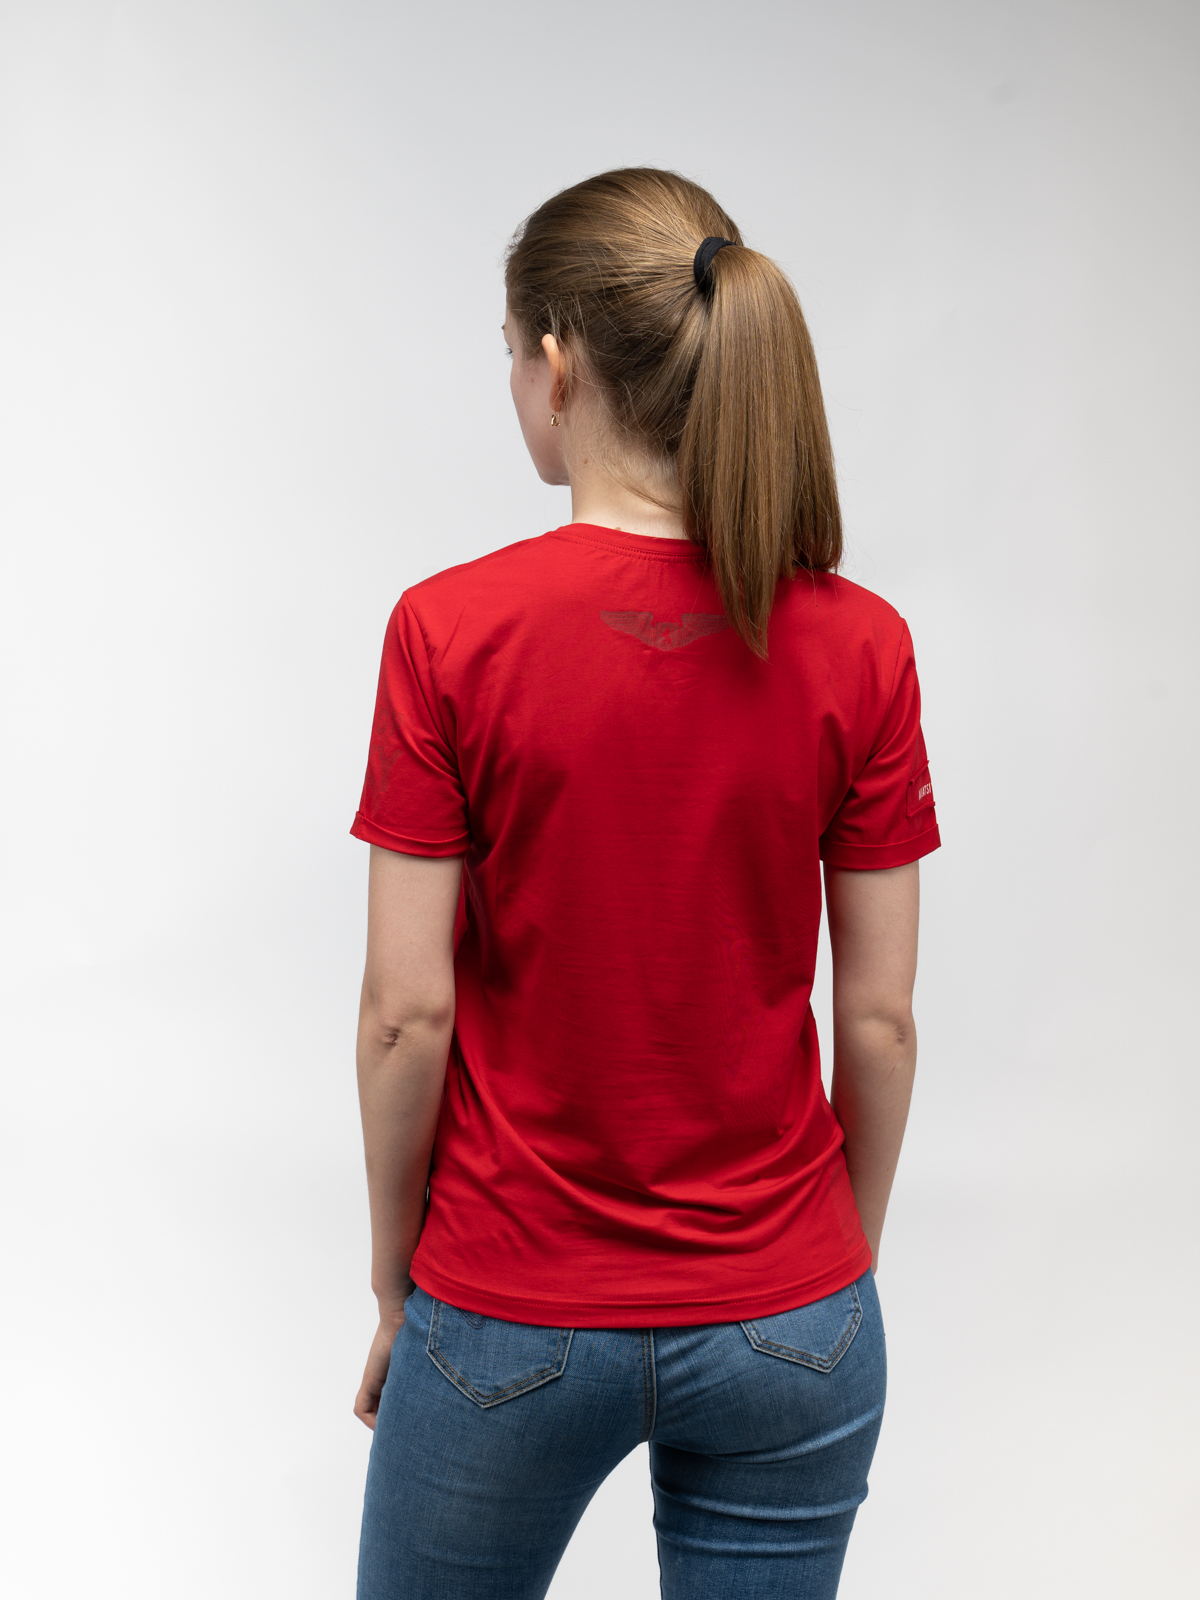 Women's T-Shirt Sikorsky. Color red.  Don't worry about the universal size.